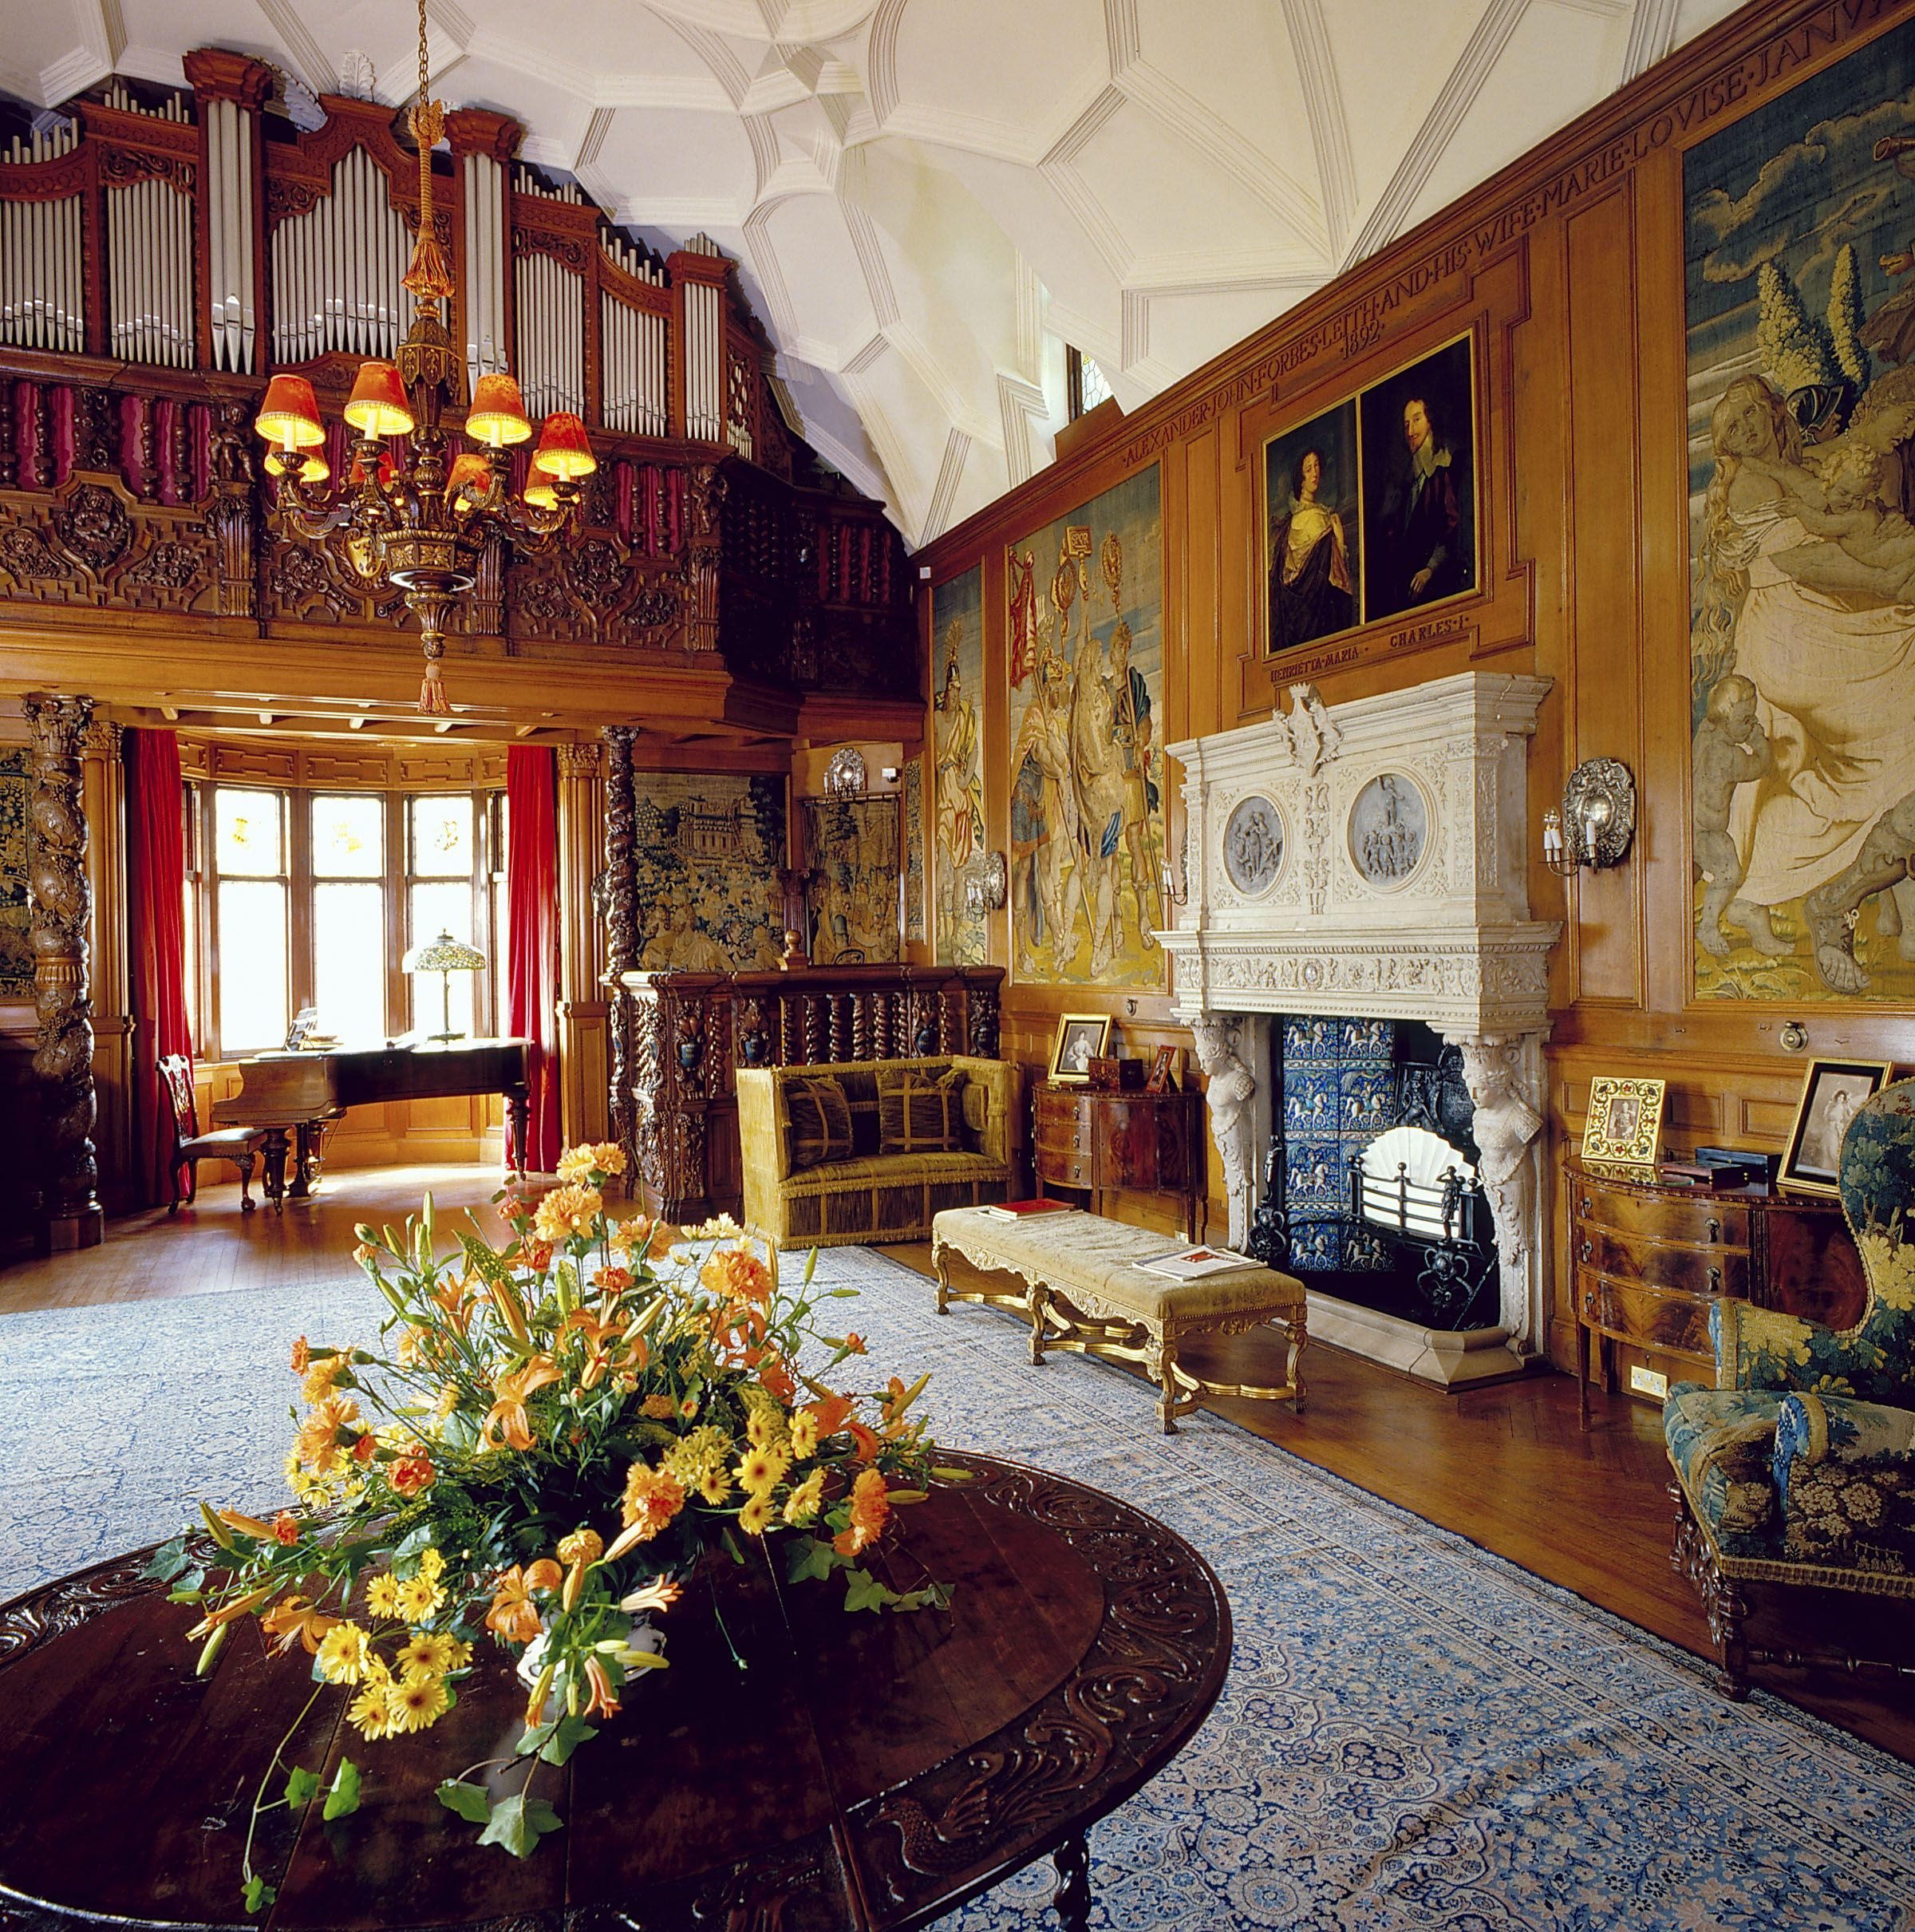 glamis castle interior - google search | castles & mansions